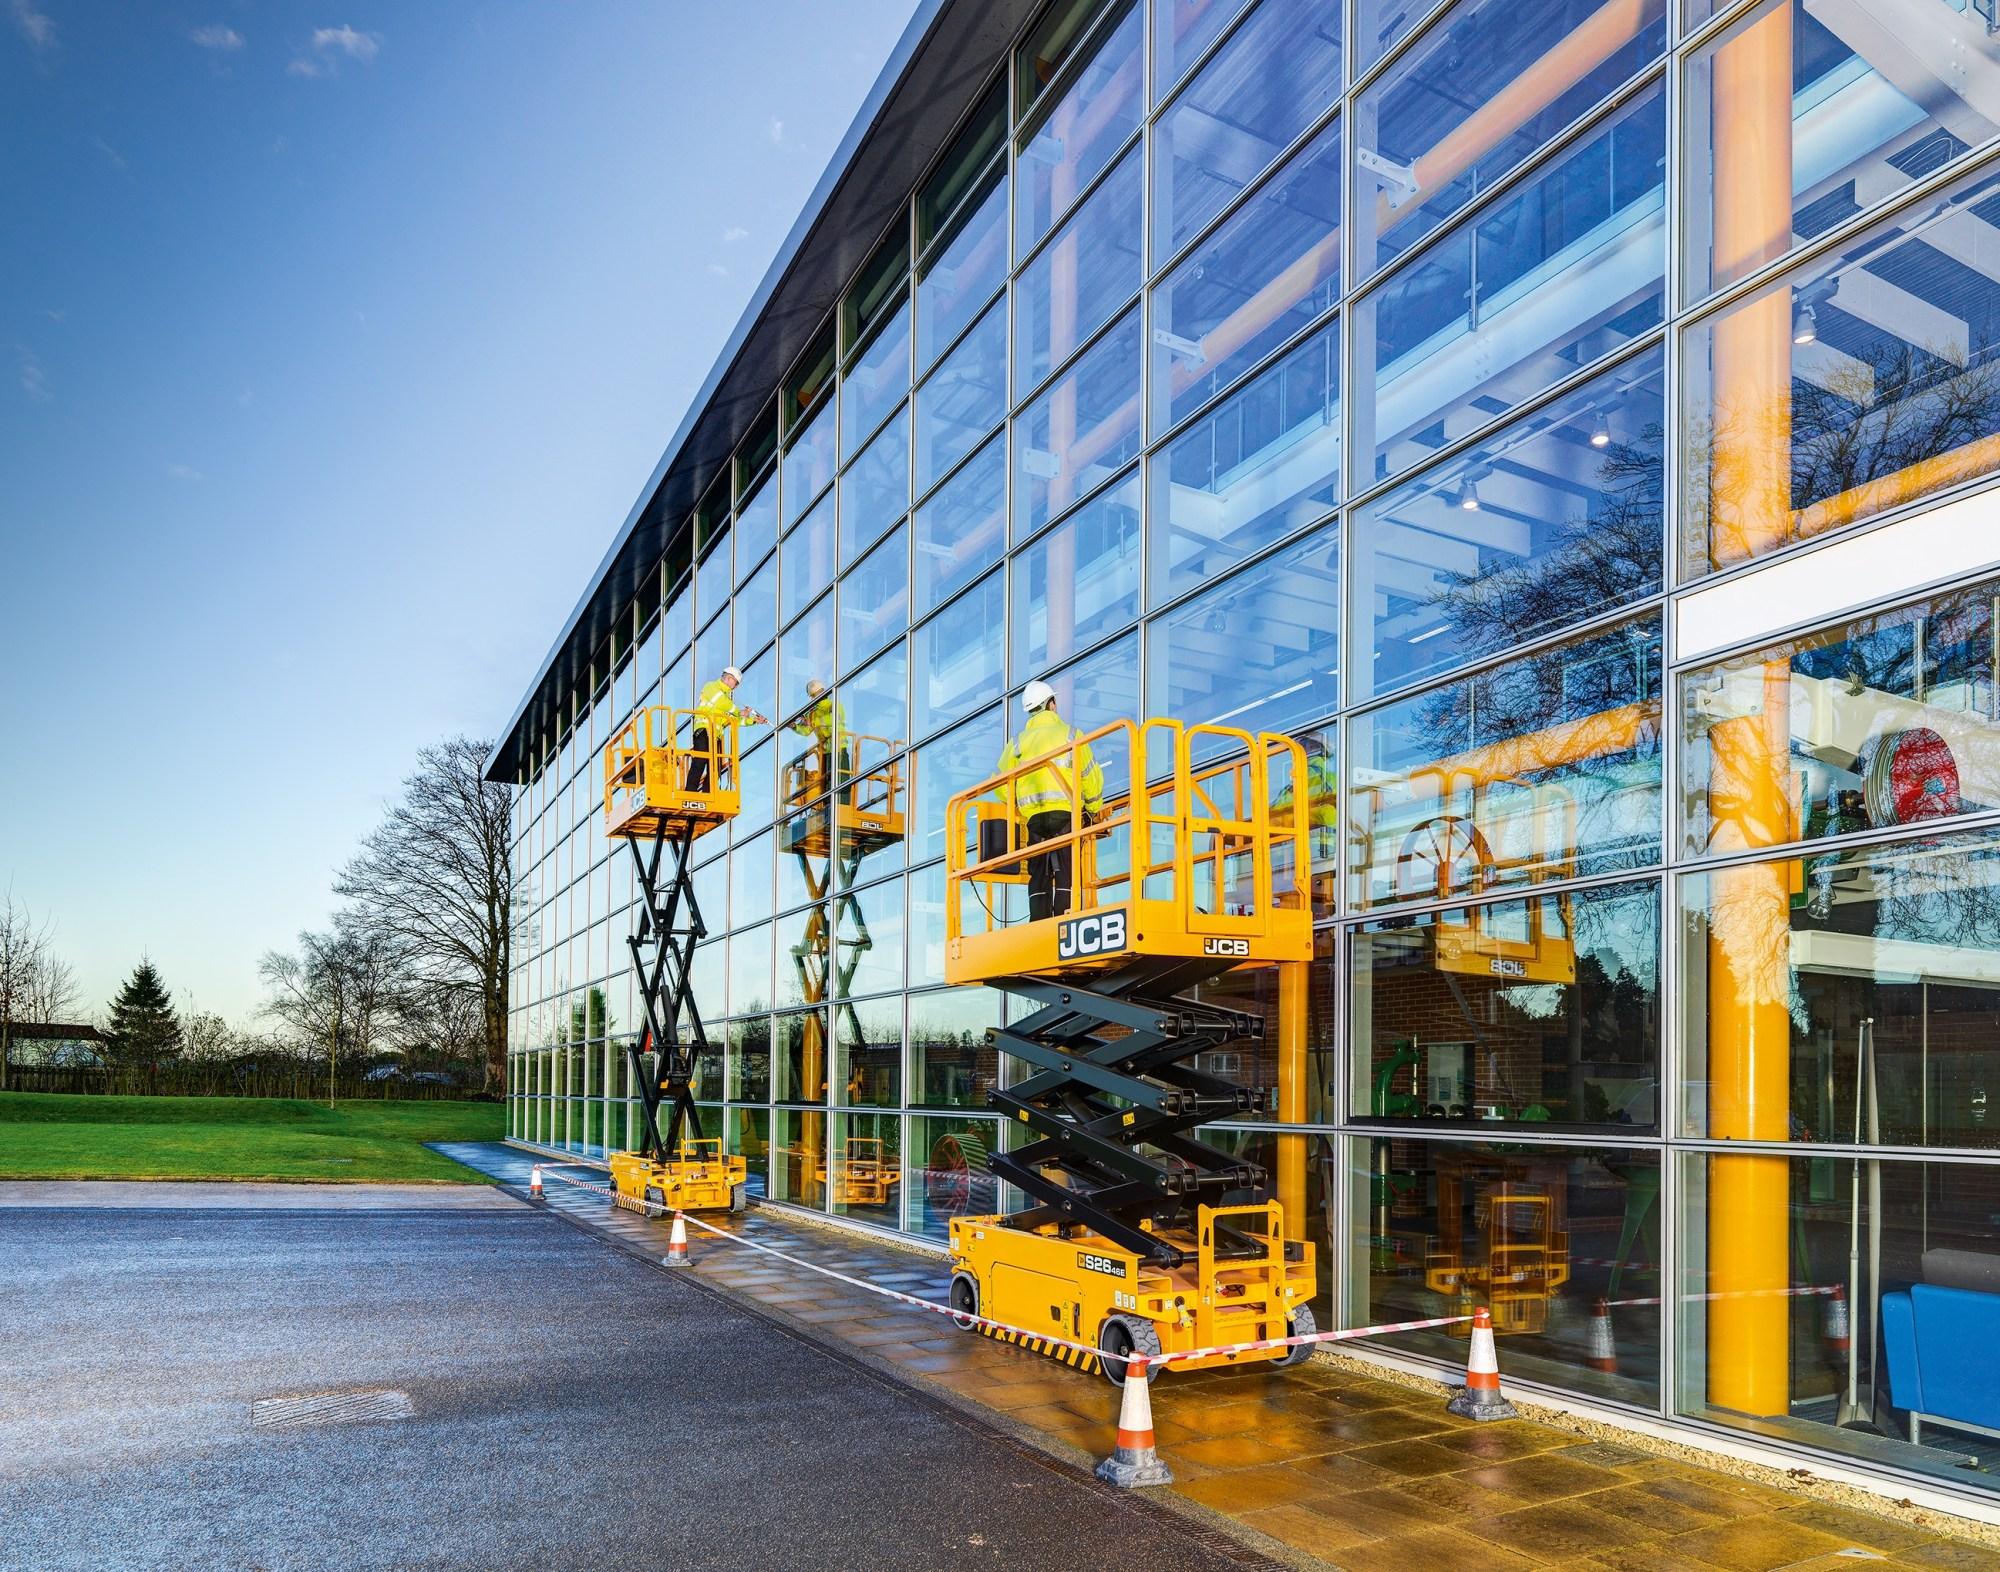 hight resolution of jcb introduced its first nine products to signal its entrance into the aerial lift market